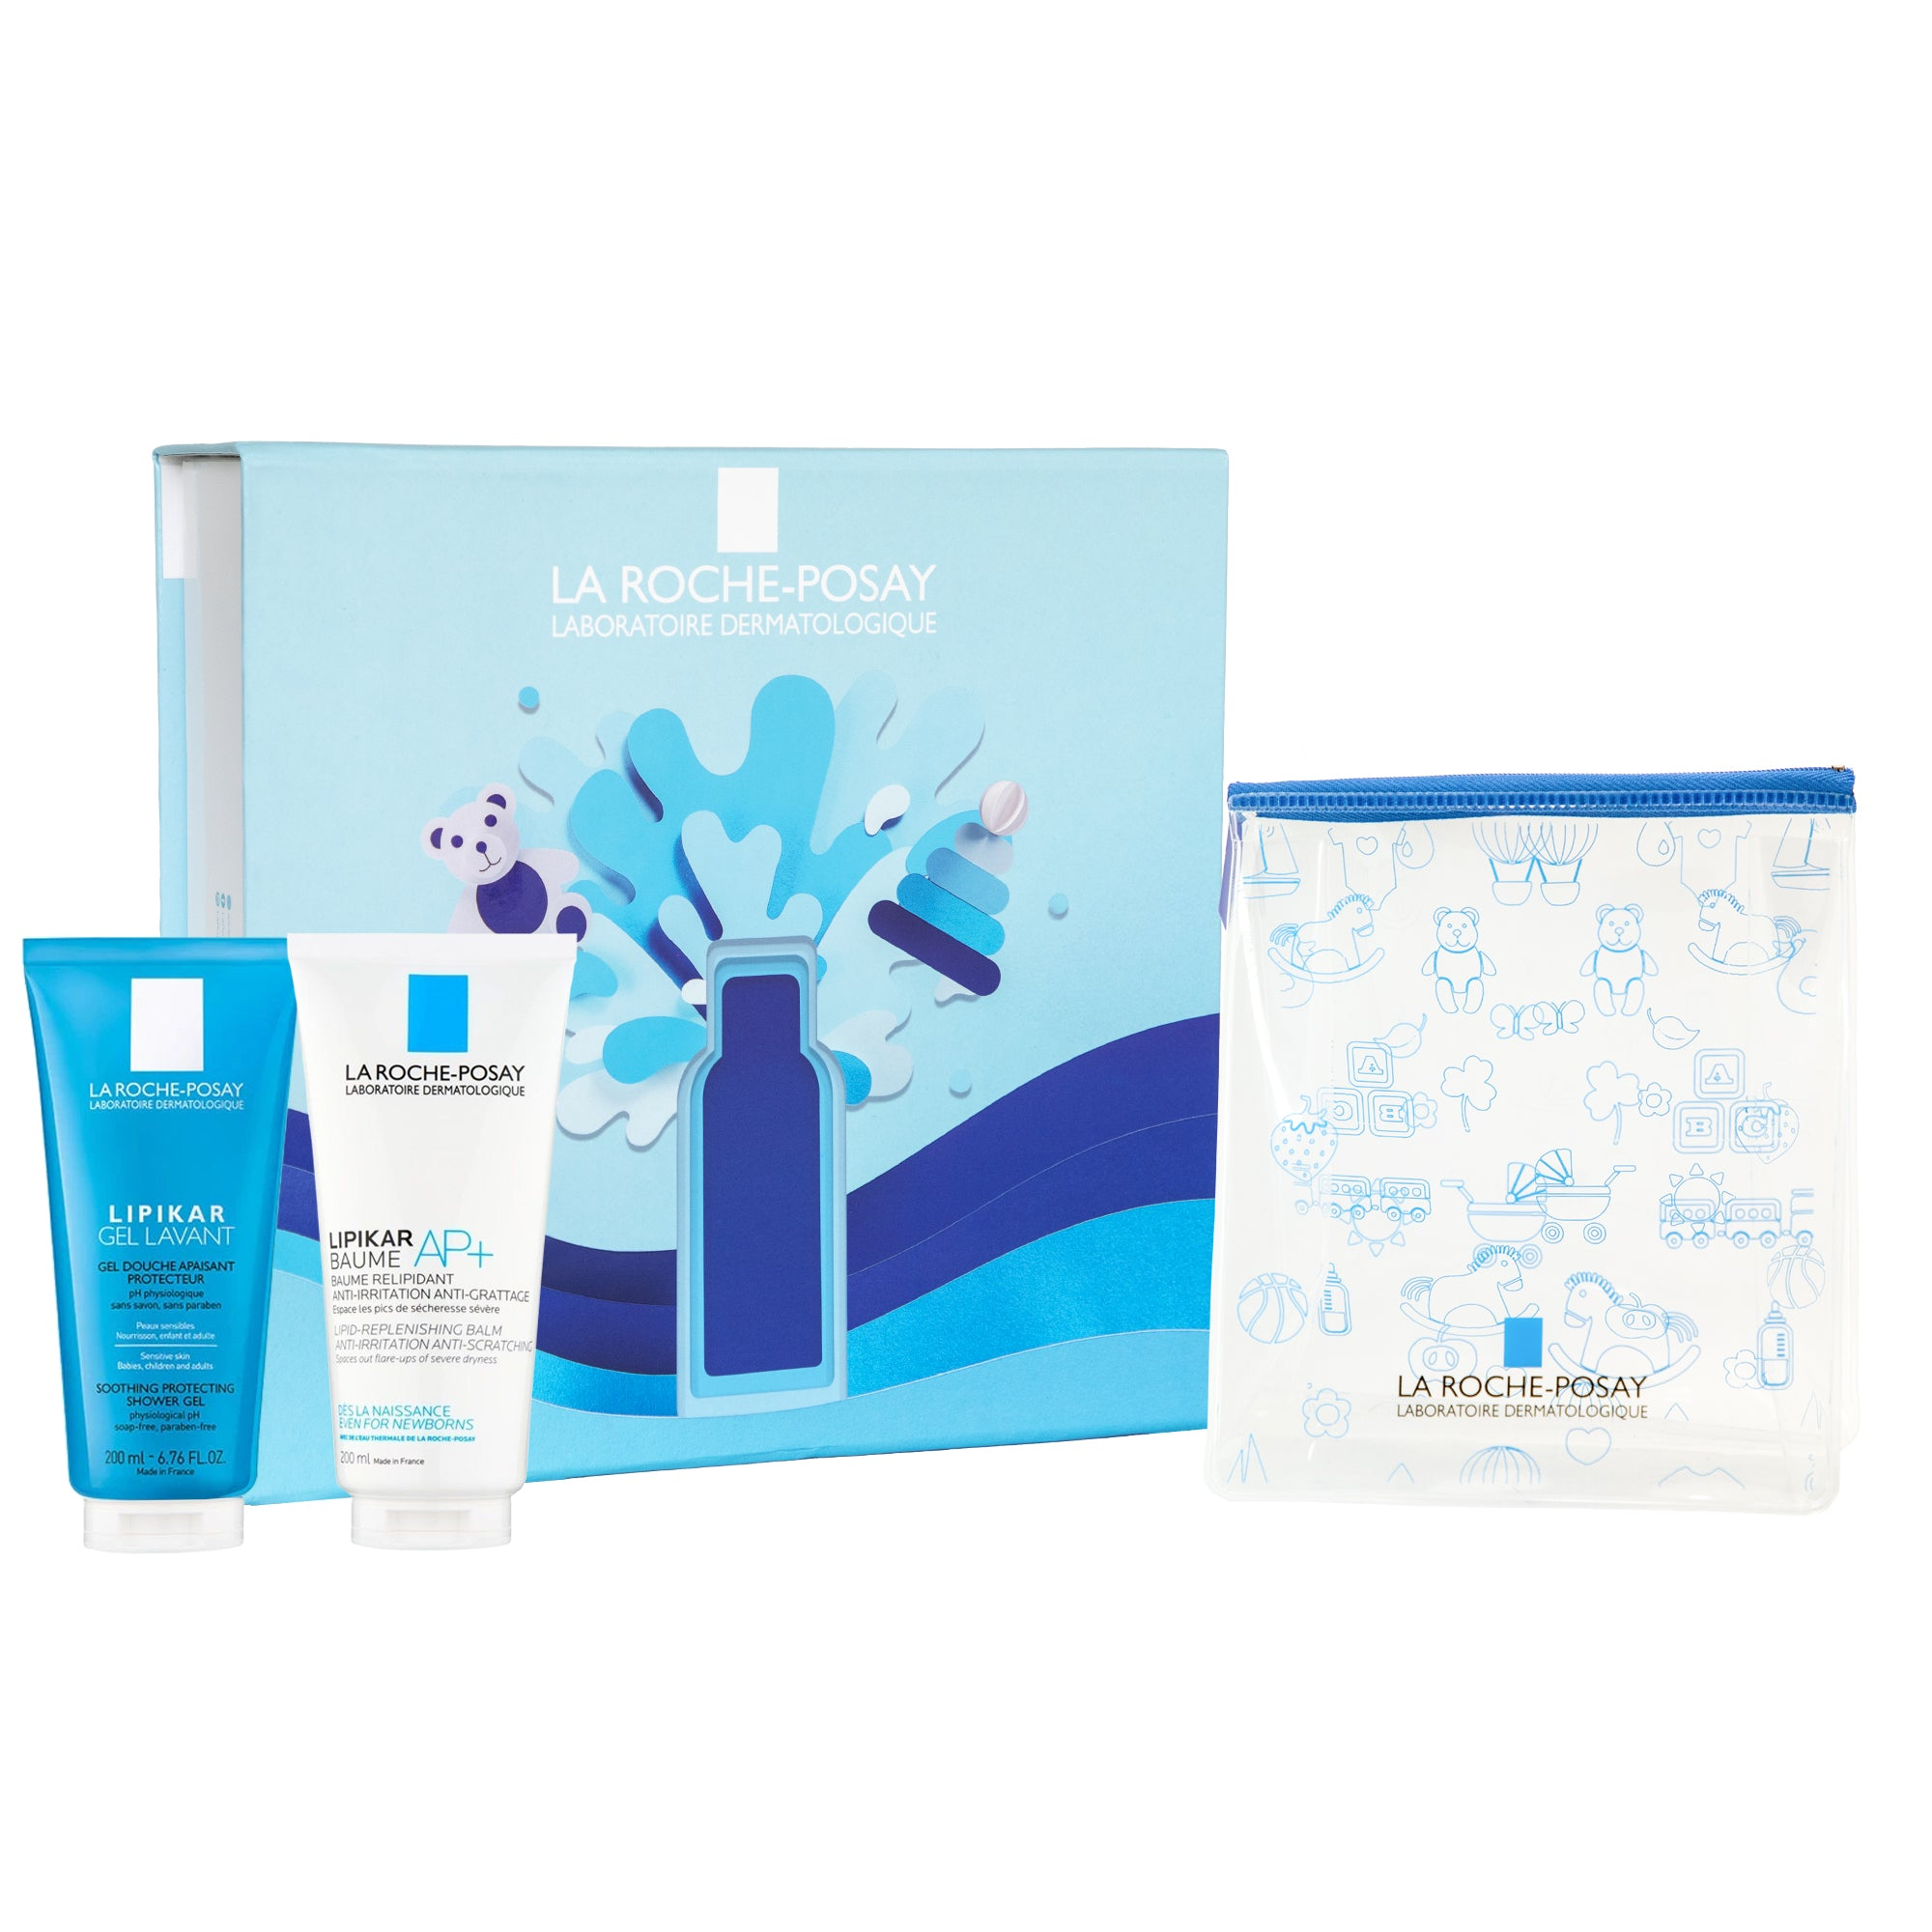 1 Hydrance Optimale UV Rich 40ML + 1 Hydrance Optimale Hydrating Serum 30ML + 3 in 1 Make-Up Remover 100ML